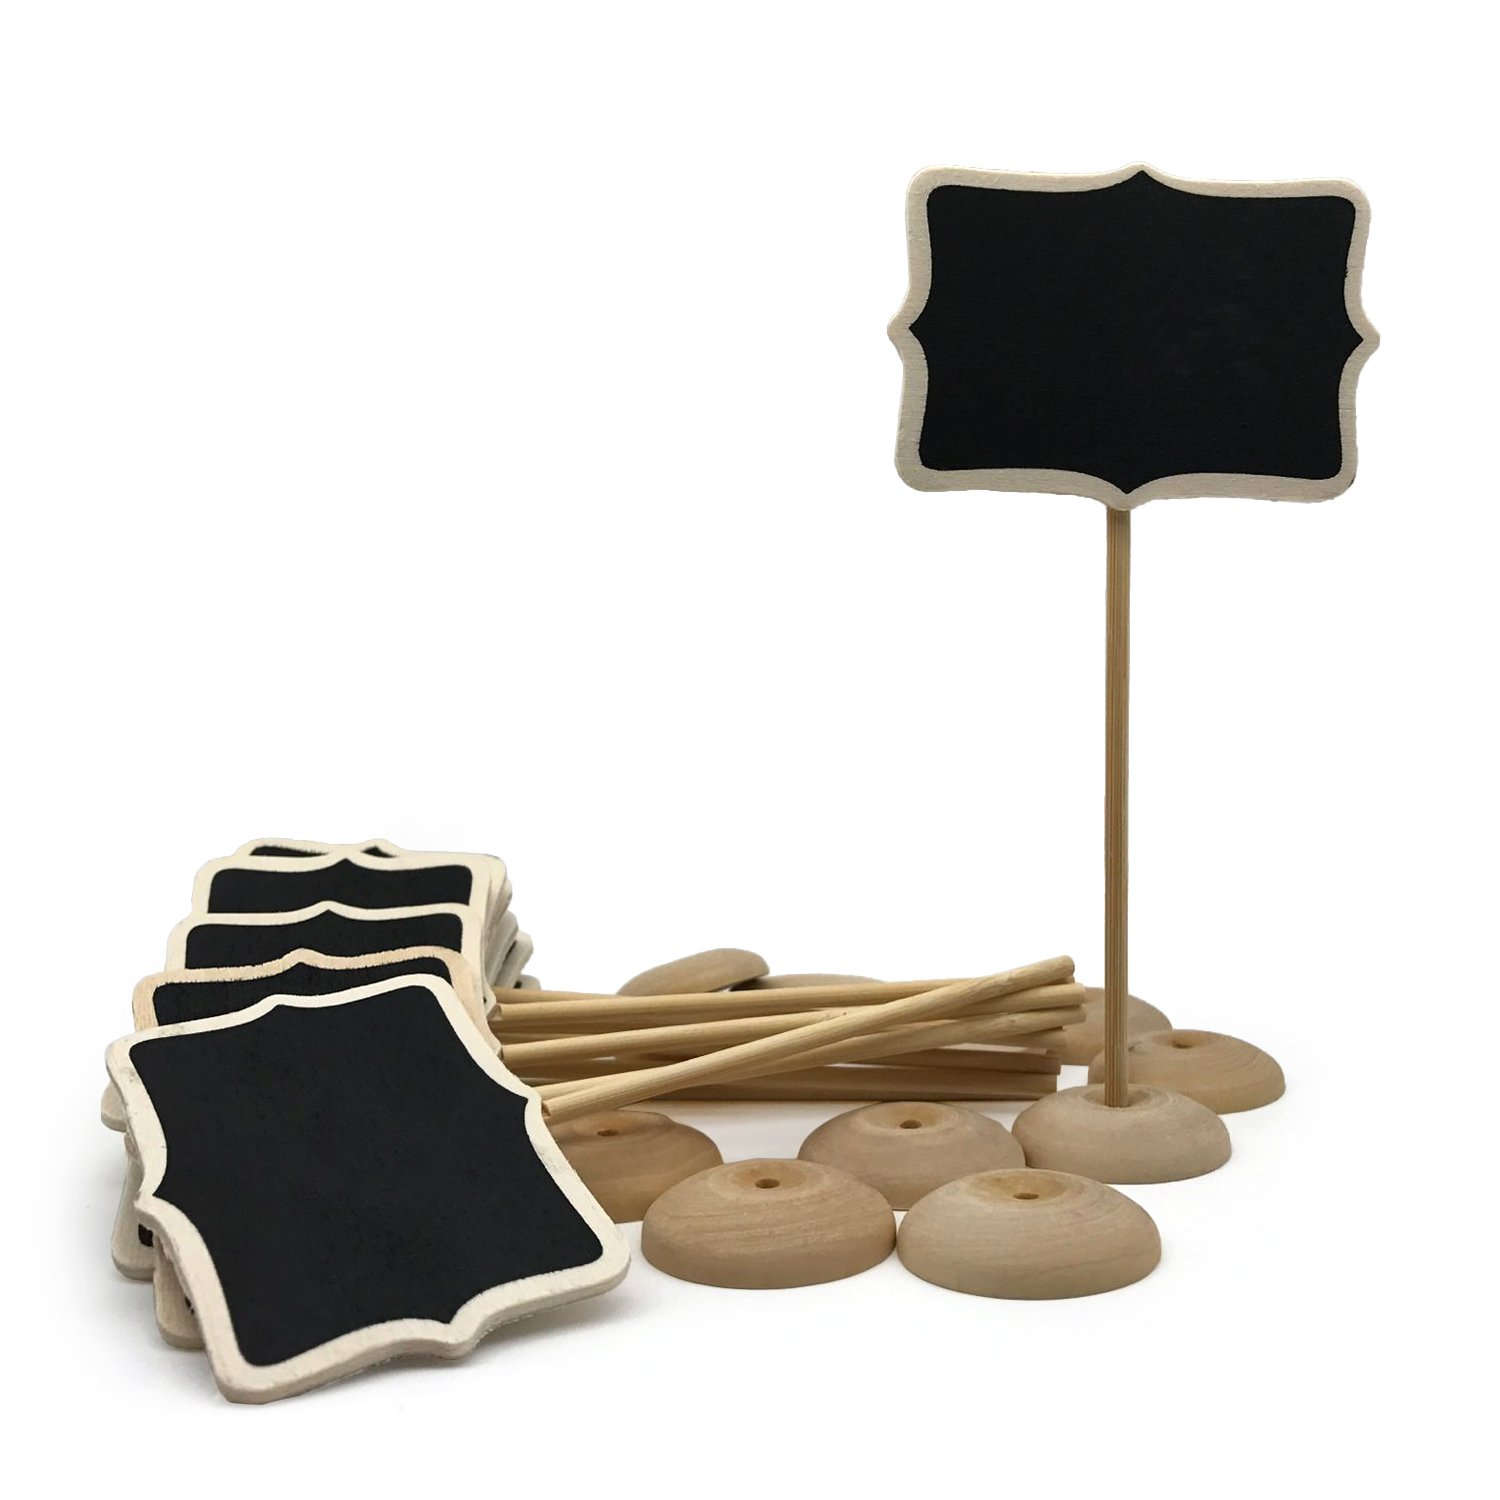 KEIVA 15 Mini Retangle Shape Chalkboard Blackboard with Stand Wooden Place Card Holder Table Numbe Favor Tag Plant Marker for Halloween Christmas Wedding Birthday Event Party decoration IH000019